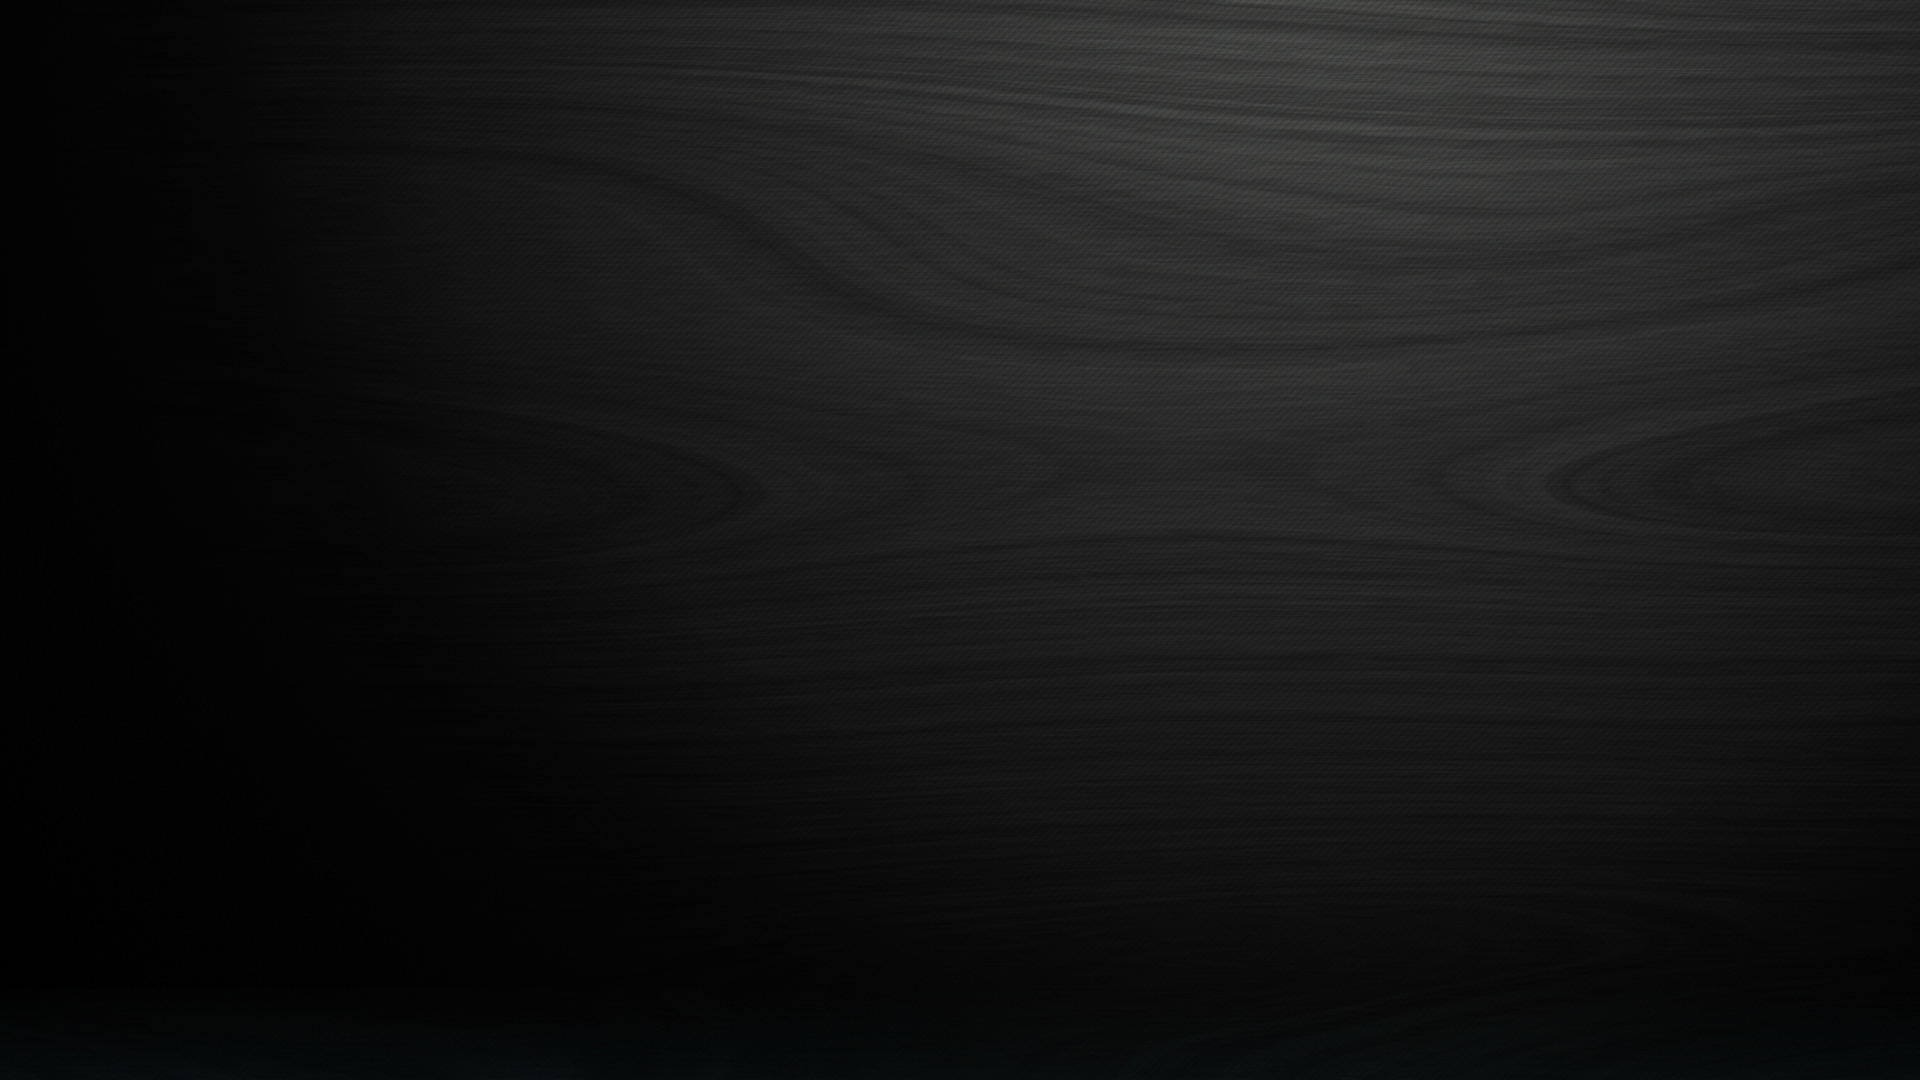 Download black woody hd hd 1080p wallpaper Black Background and some 1920x1080